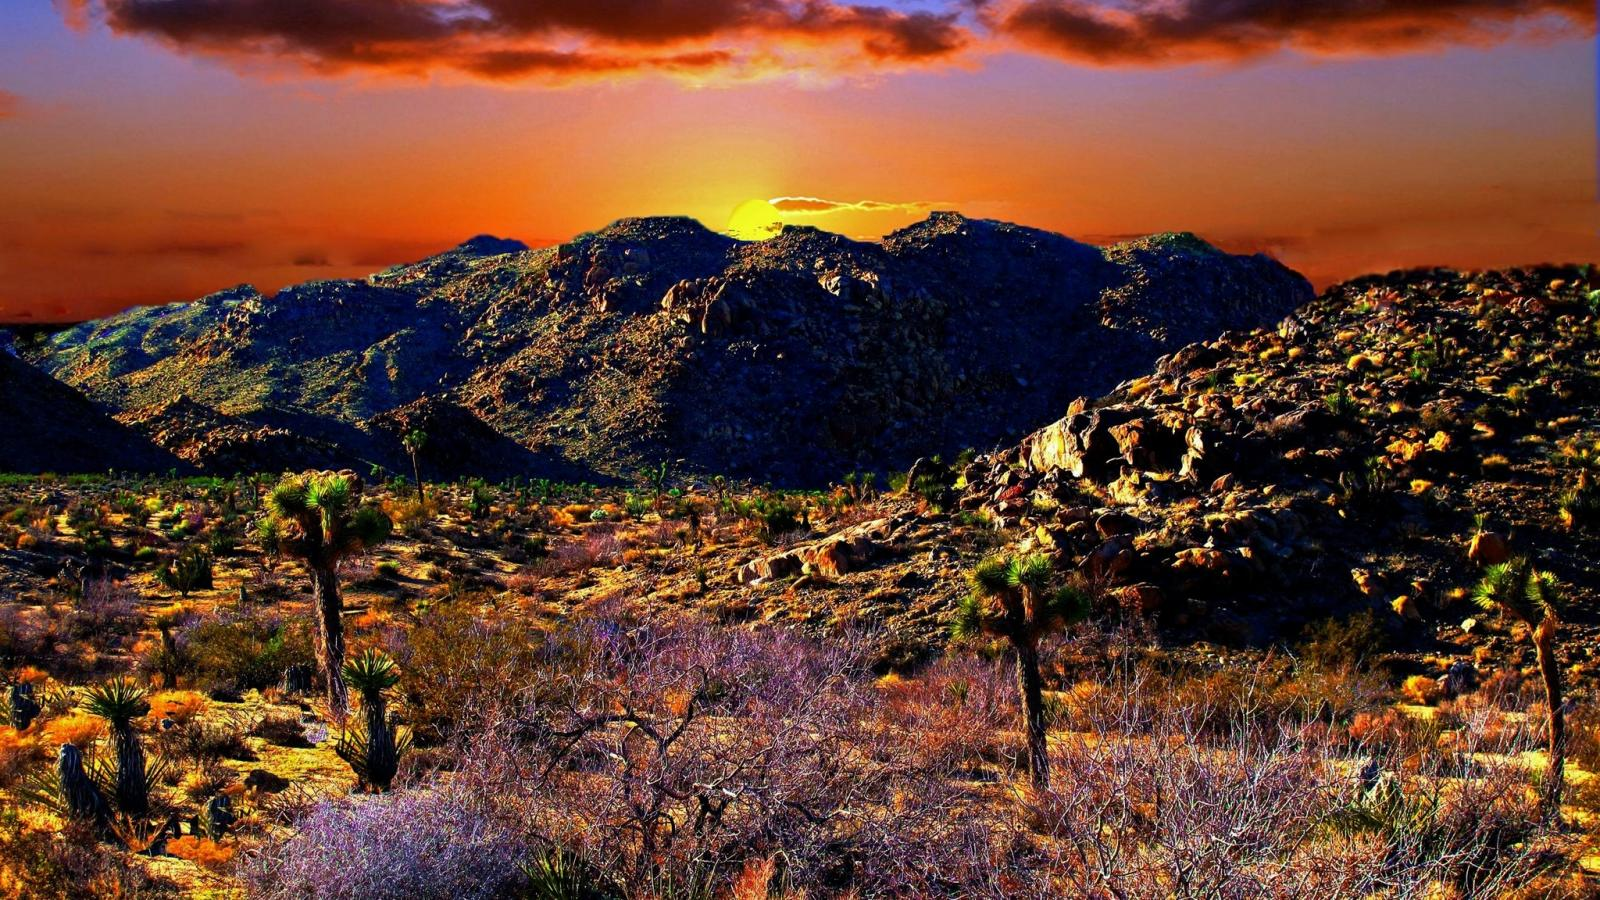 Sunset nature landscape deserts 1600x900 1975